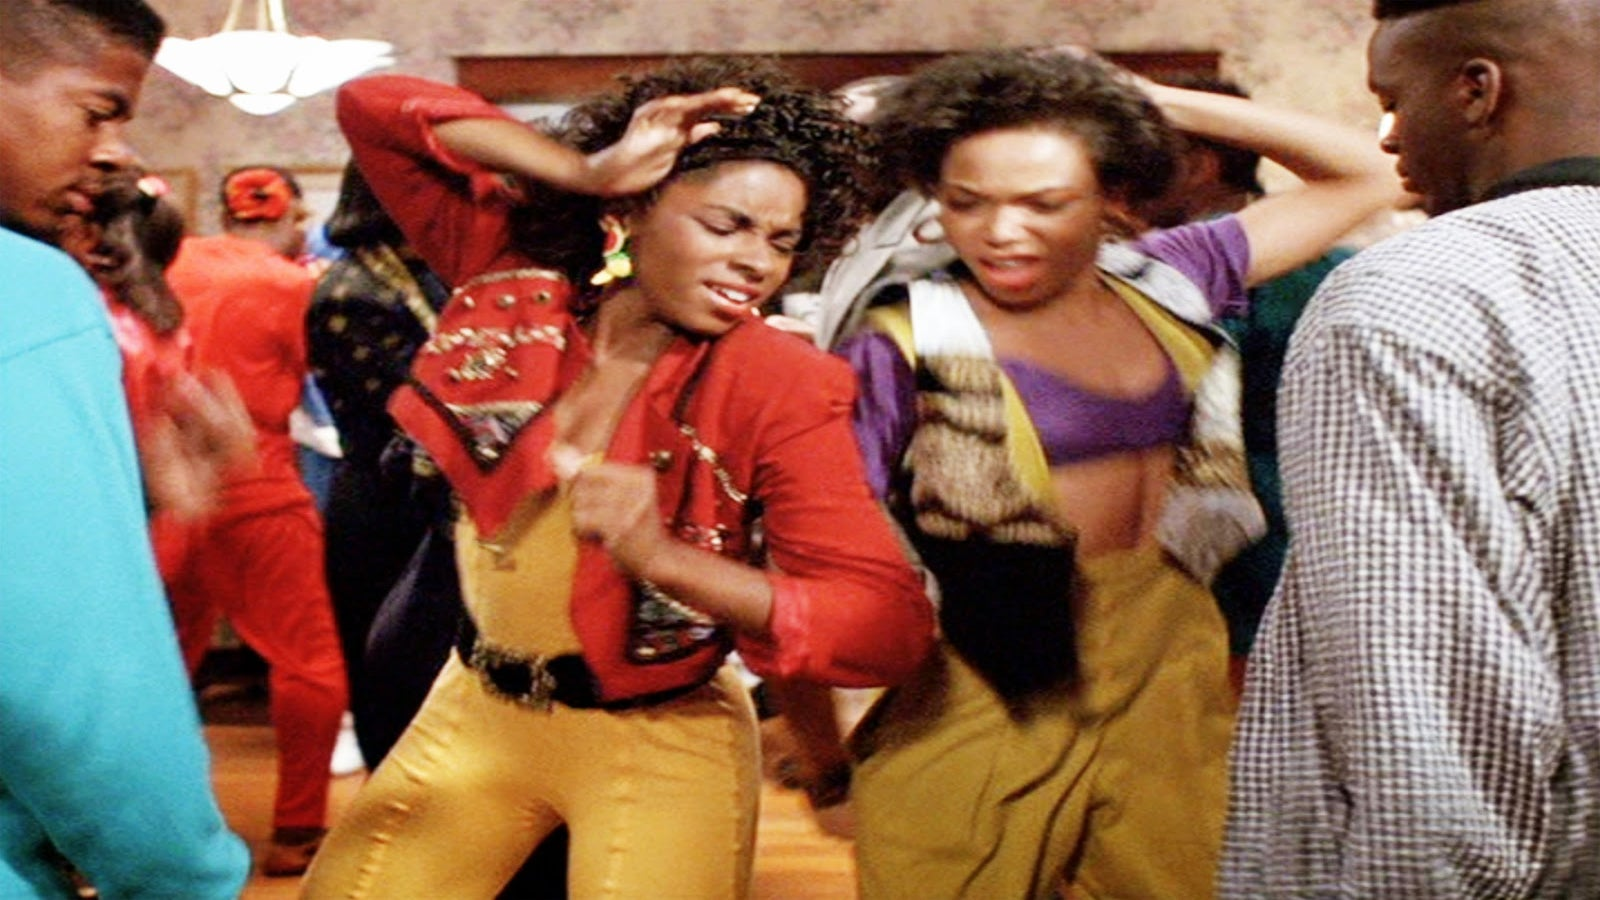 AJ Johnson & Tisha Campbell Recreating Their Iconic 'House Party' Dance Scene Is An Epic Flashback Moment